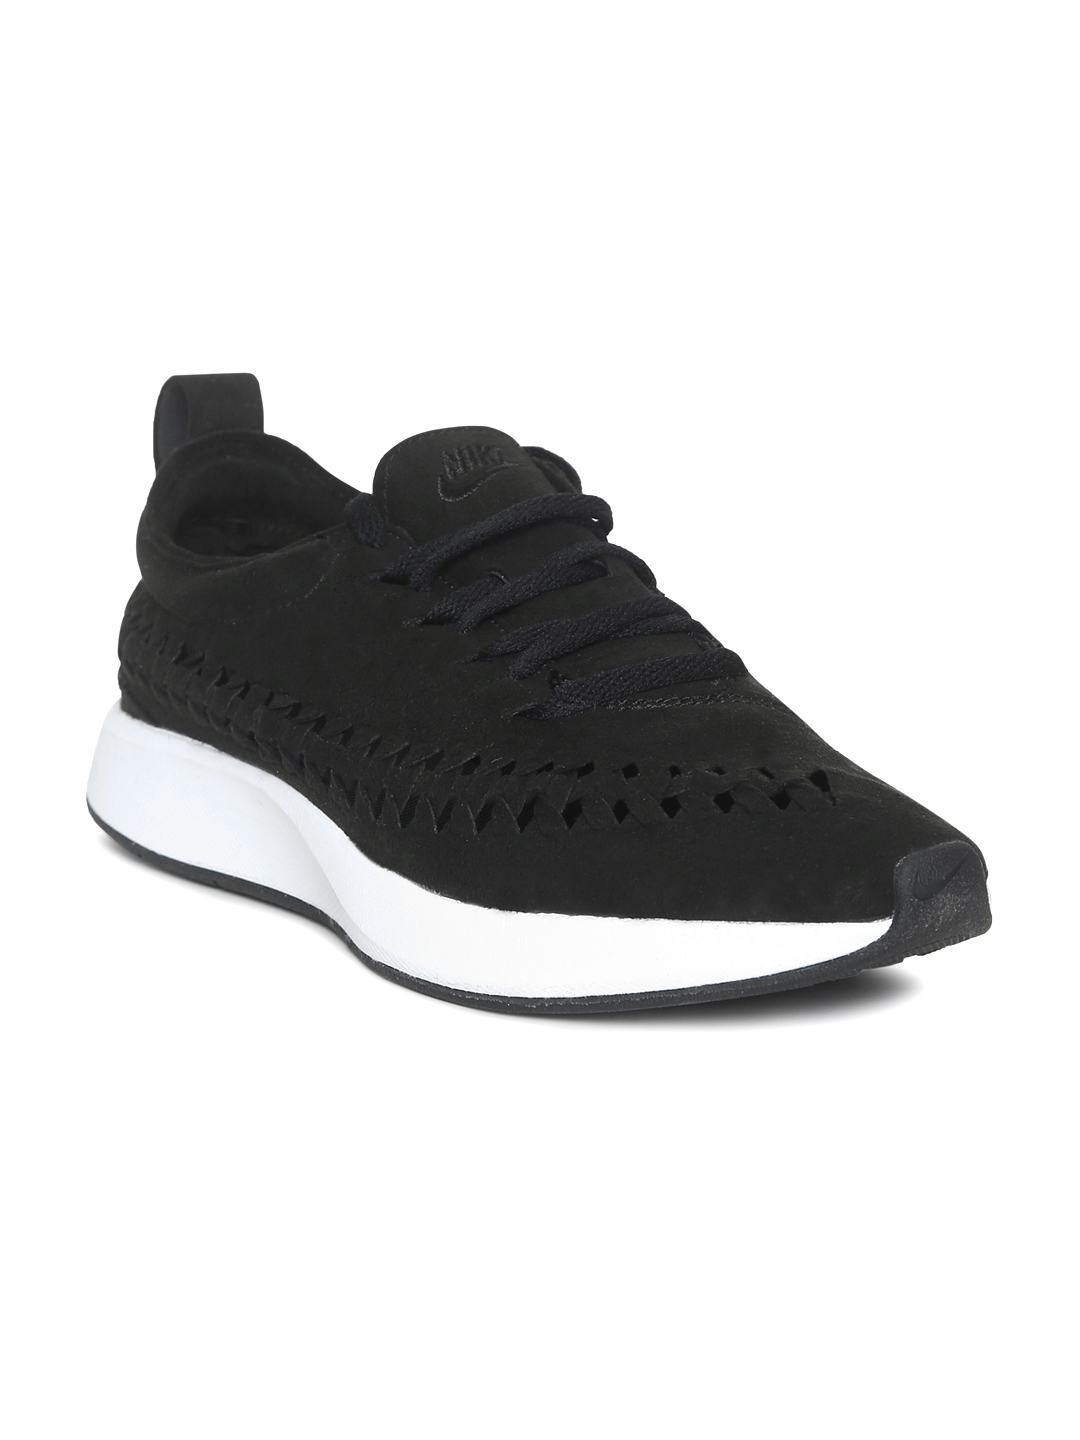 6af4656c2a16f6 Buy Nike Men Black Dualtone Racer Woven Sneakers - Casual Shoes for ...